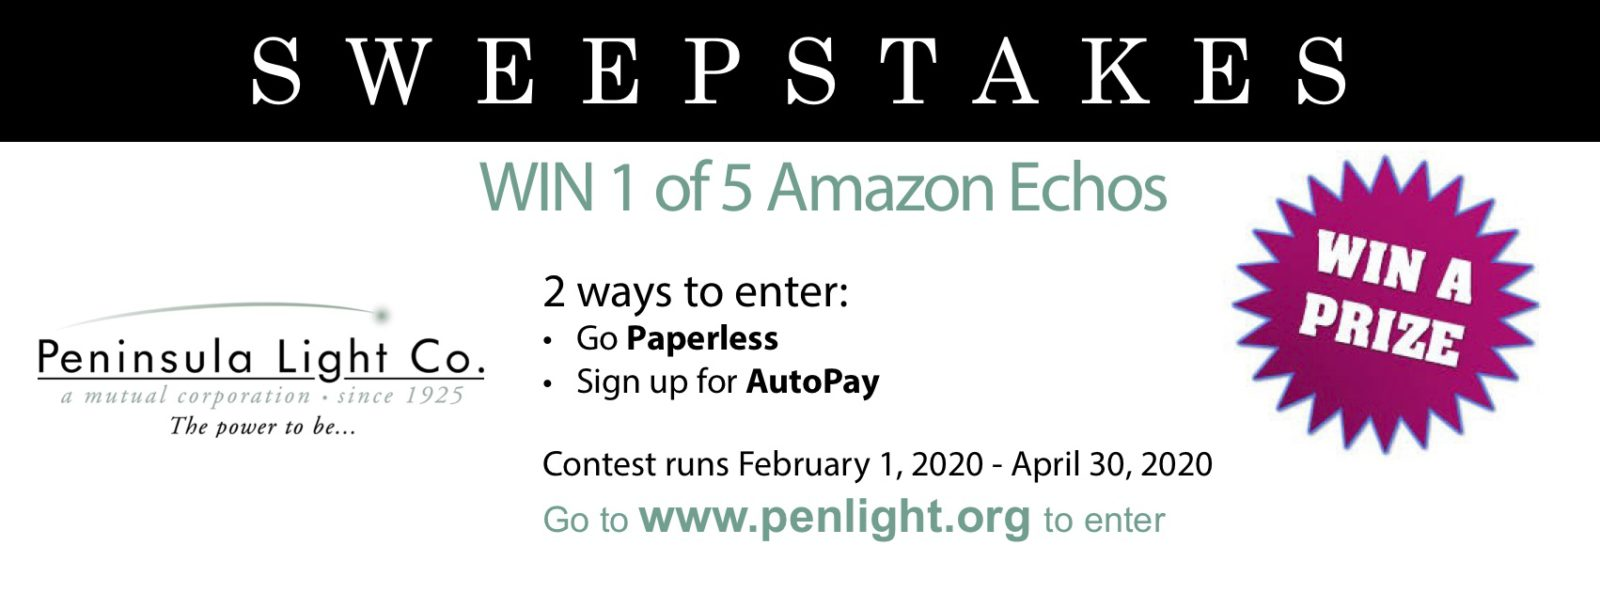 Sweepstakes. WIN 1 of 5 Amazon Echos. Win a Prize. Penisula Light Company logo. 2 Ways to enter: Go Paperless. Sign up for AutoPay. Contest runs February 1, 2020 to April 30, 2020. Go to www.penlight.org to enter.